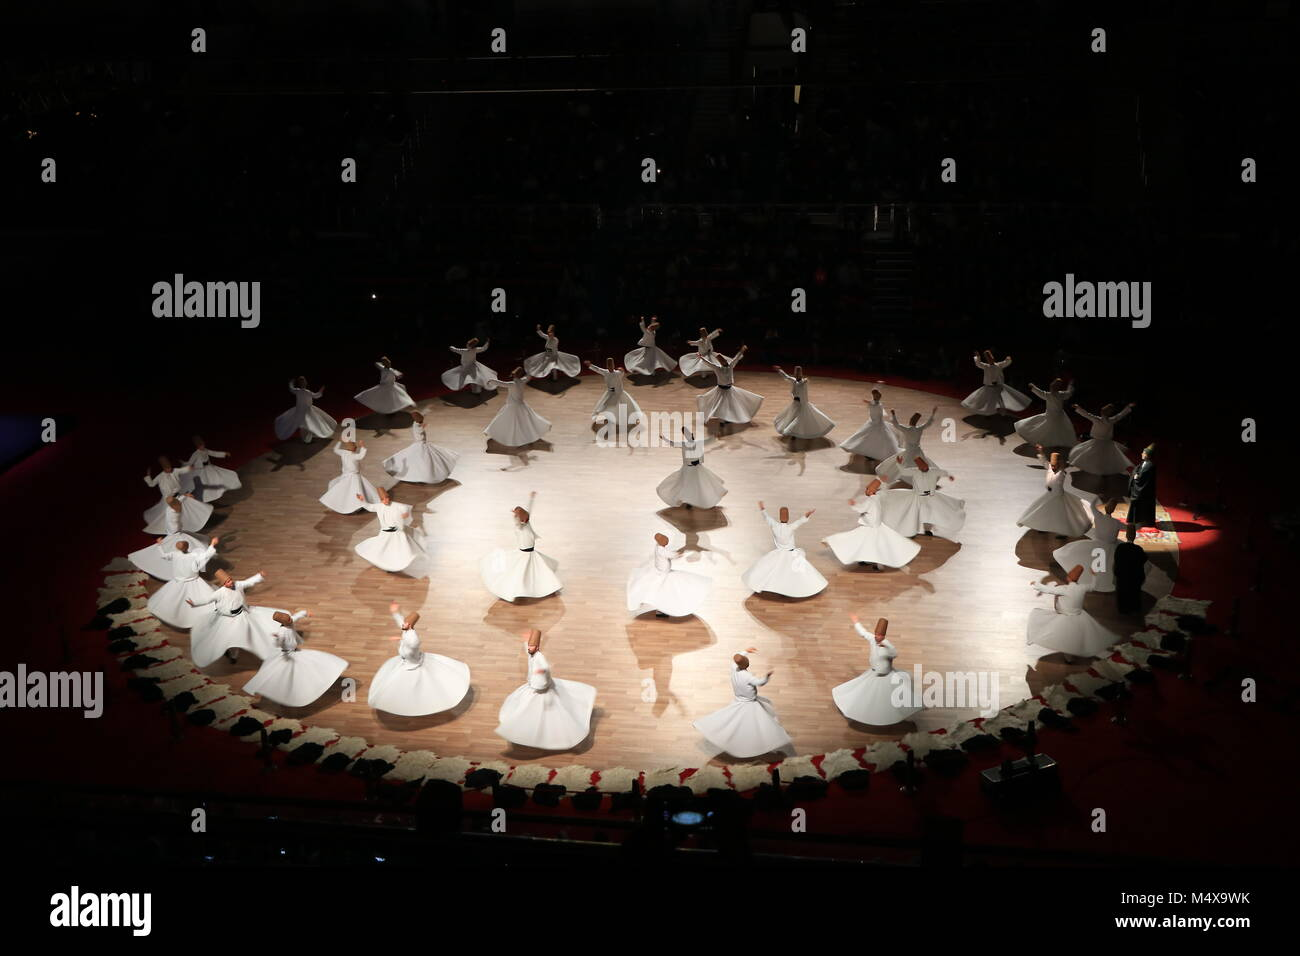 Whirling derwishes at 17 December 2018 Seb-i Arus in Konya, Turkey - Stock Image